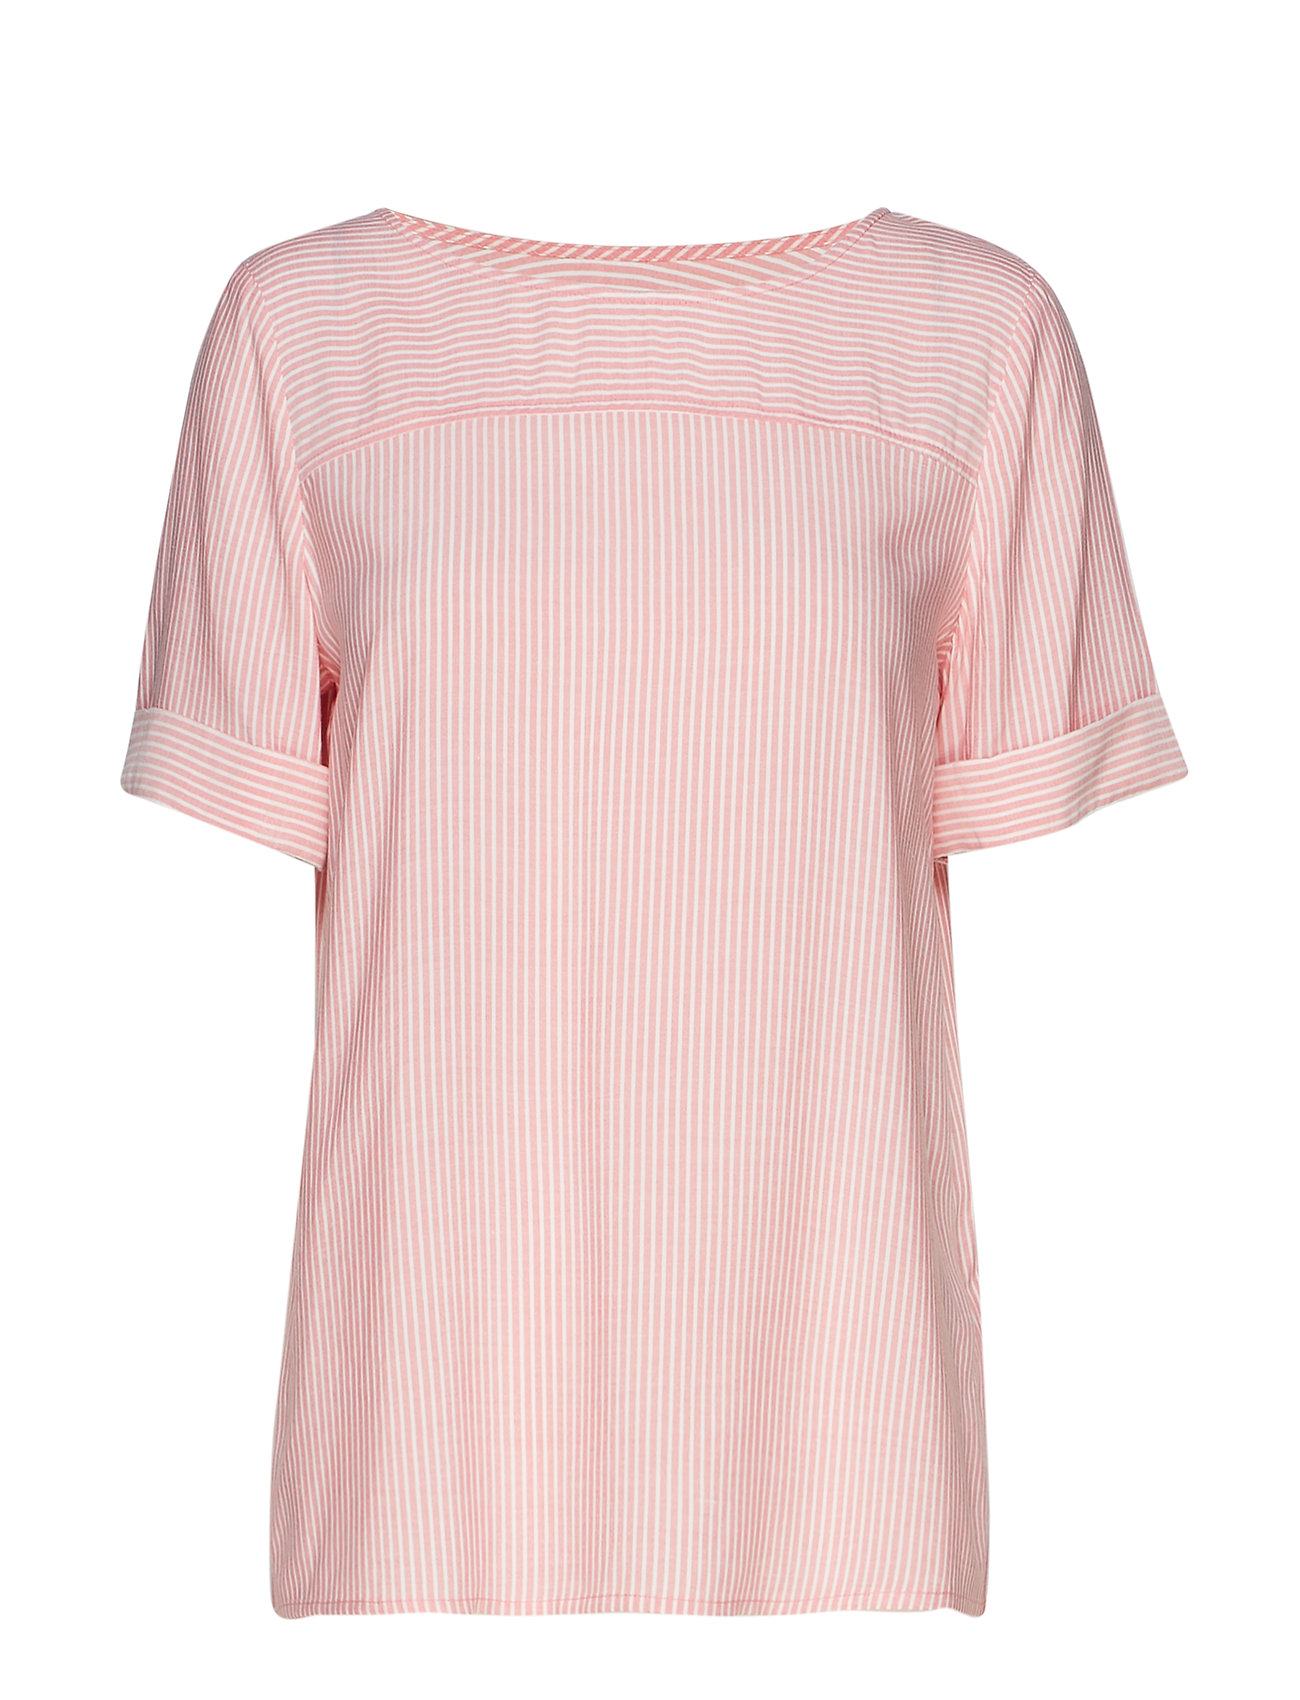 Esprit WovenpinkEdc WovenpinkEdc By Blouses Blouses odCxWrBe